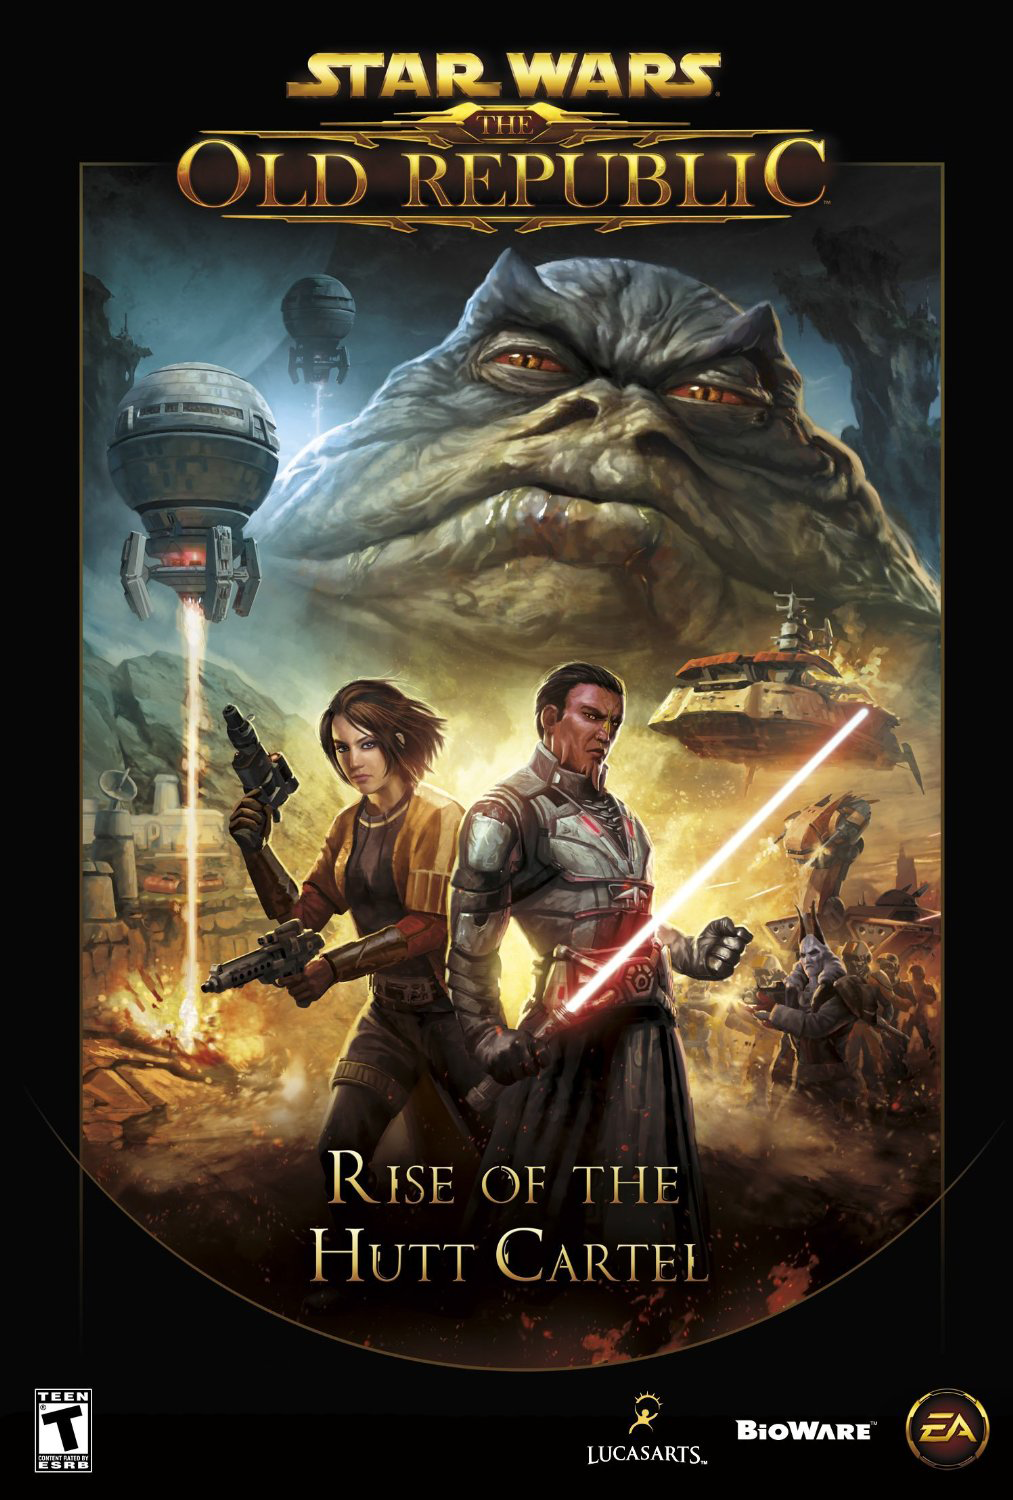 Star wars the old republic rise of the hutt cartel wookieepedia star wars the old republic rise of the hutt cartel wookieepedia fandom powered by wikia fandeluxe Gallery